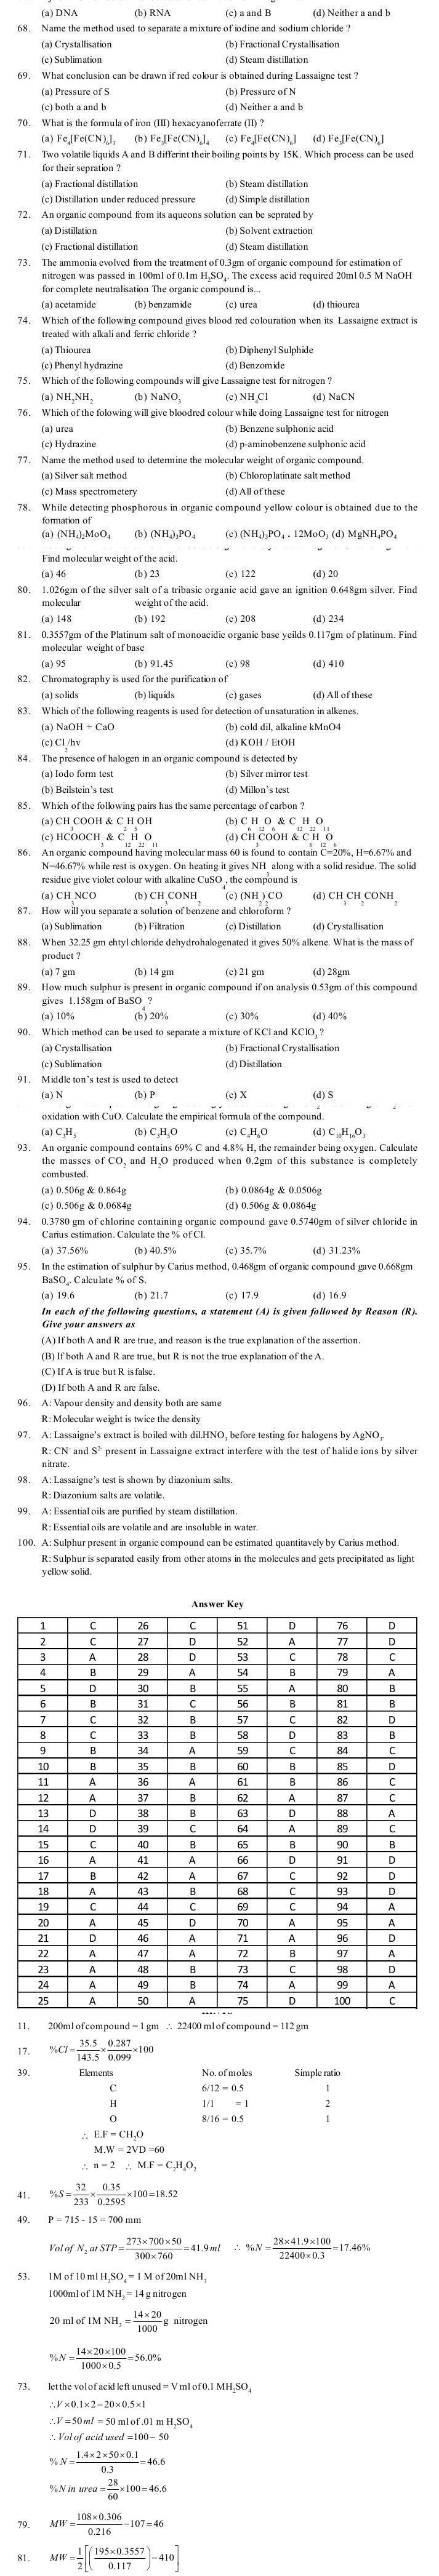 JEE and AIPMT Question Bank: Chemistry - Purificiation And Characterisation Of Organic Compounds